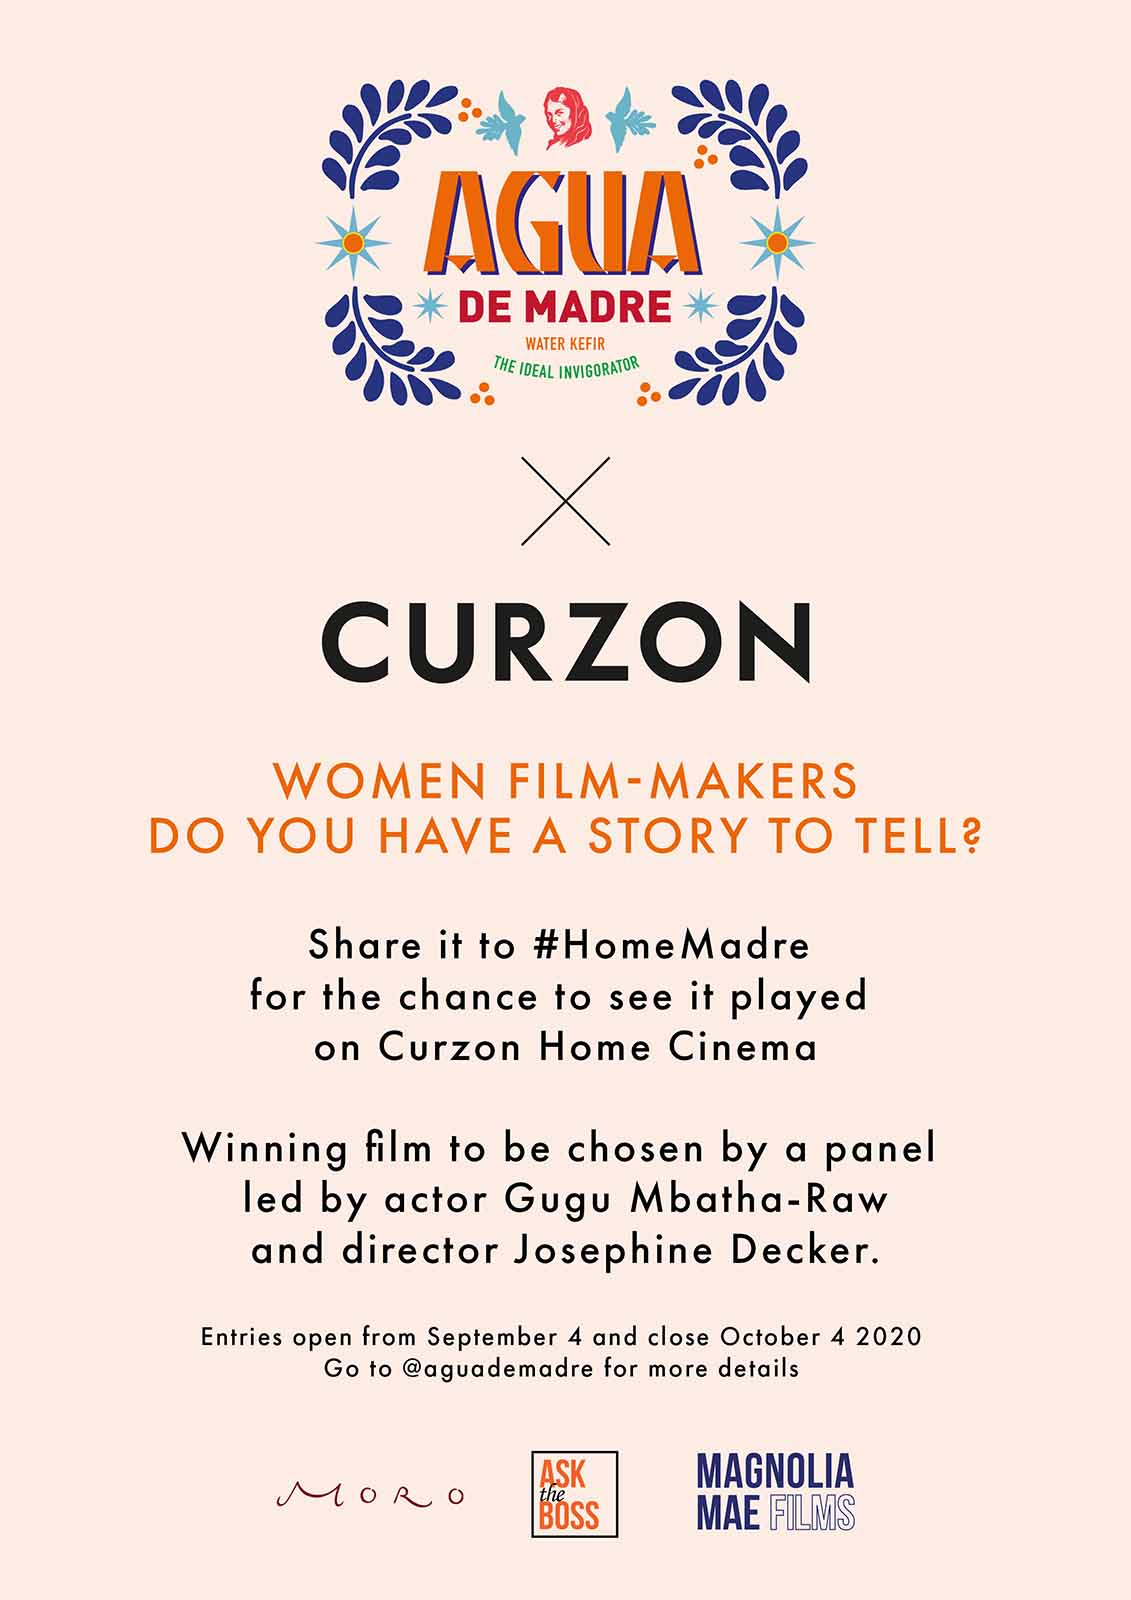 Curzon Cinema and Agua de Madre are coming together to create an initiative supporting British female filmmakers left unemployed by COVID-19.